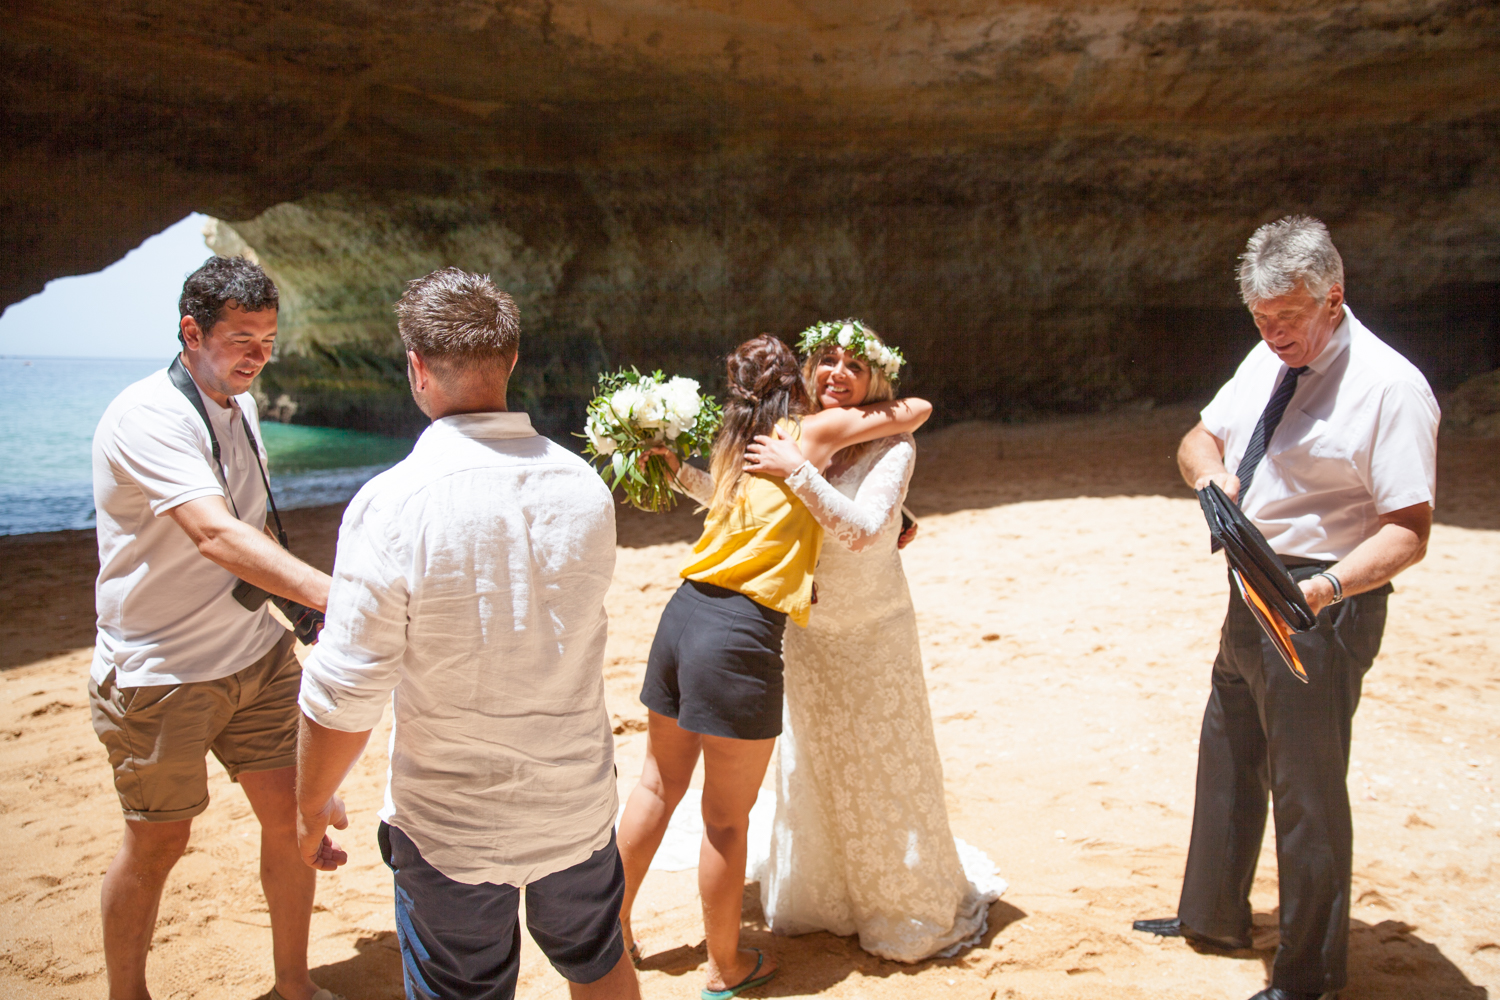 WEDDING_PORTUGAL_NOSOLOAGUA_CAVE_PICTORIAL_BERWICK--6.jpg